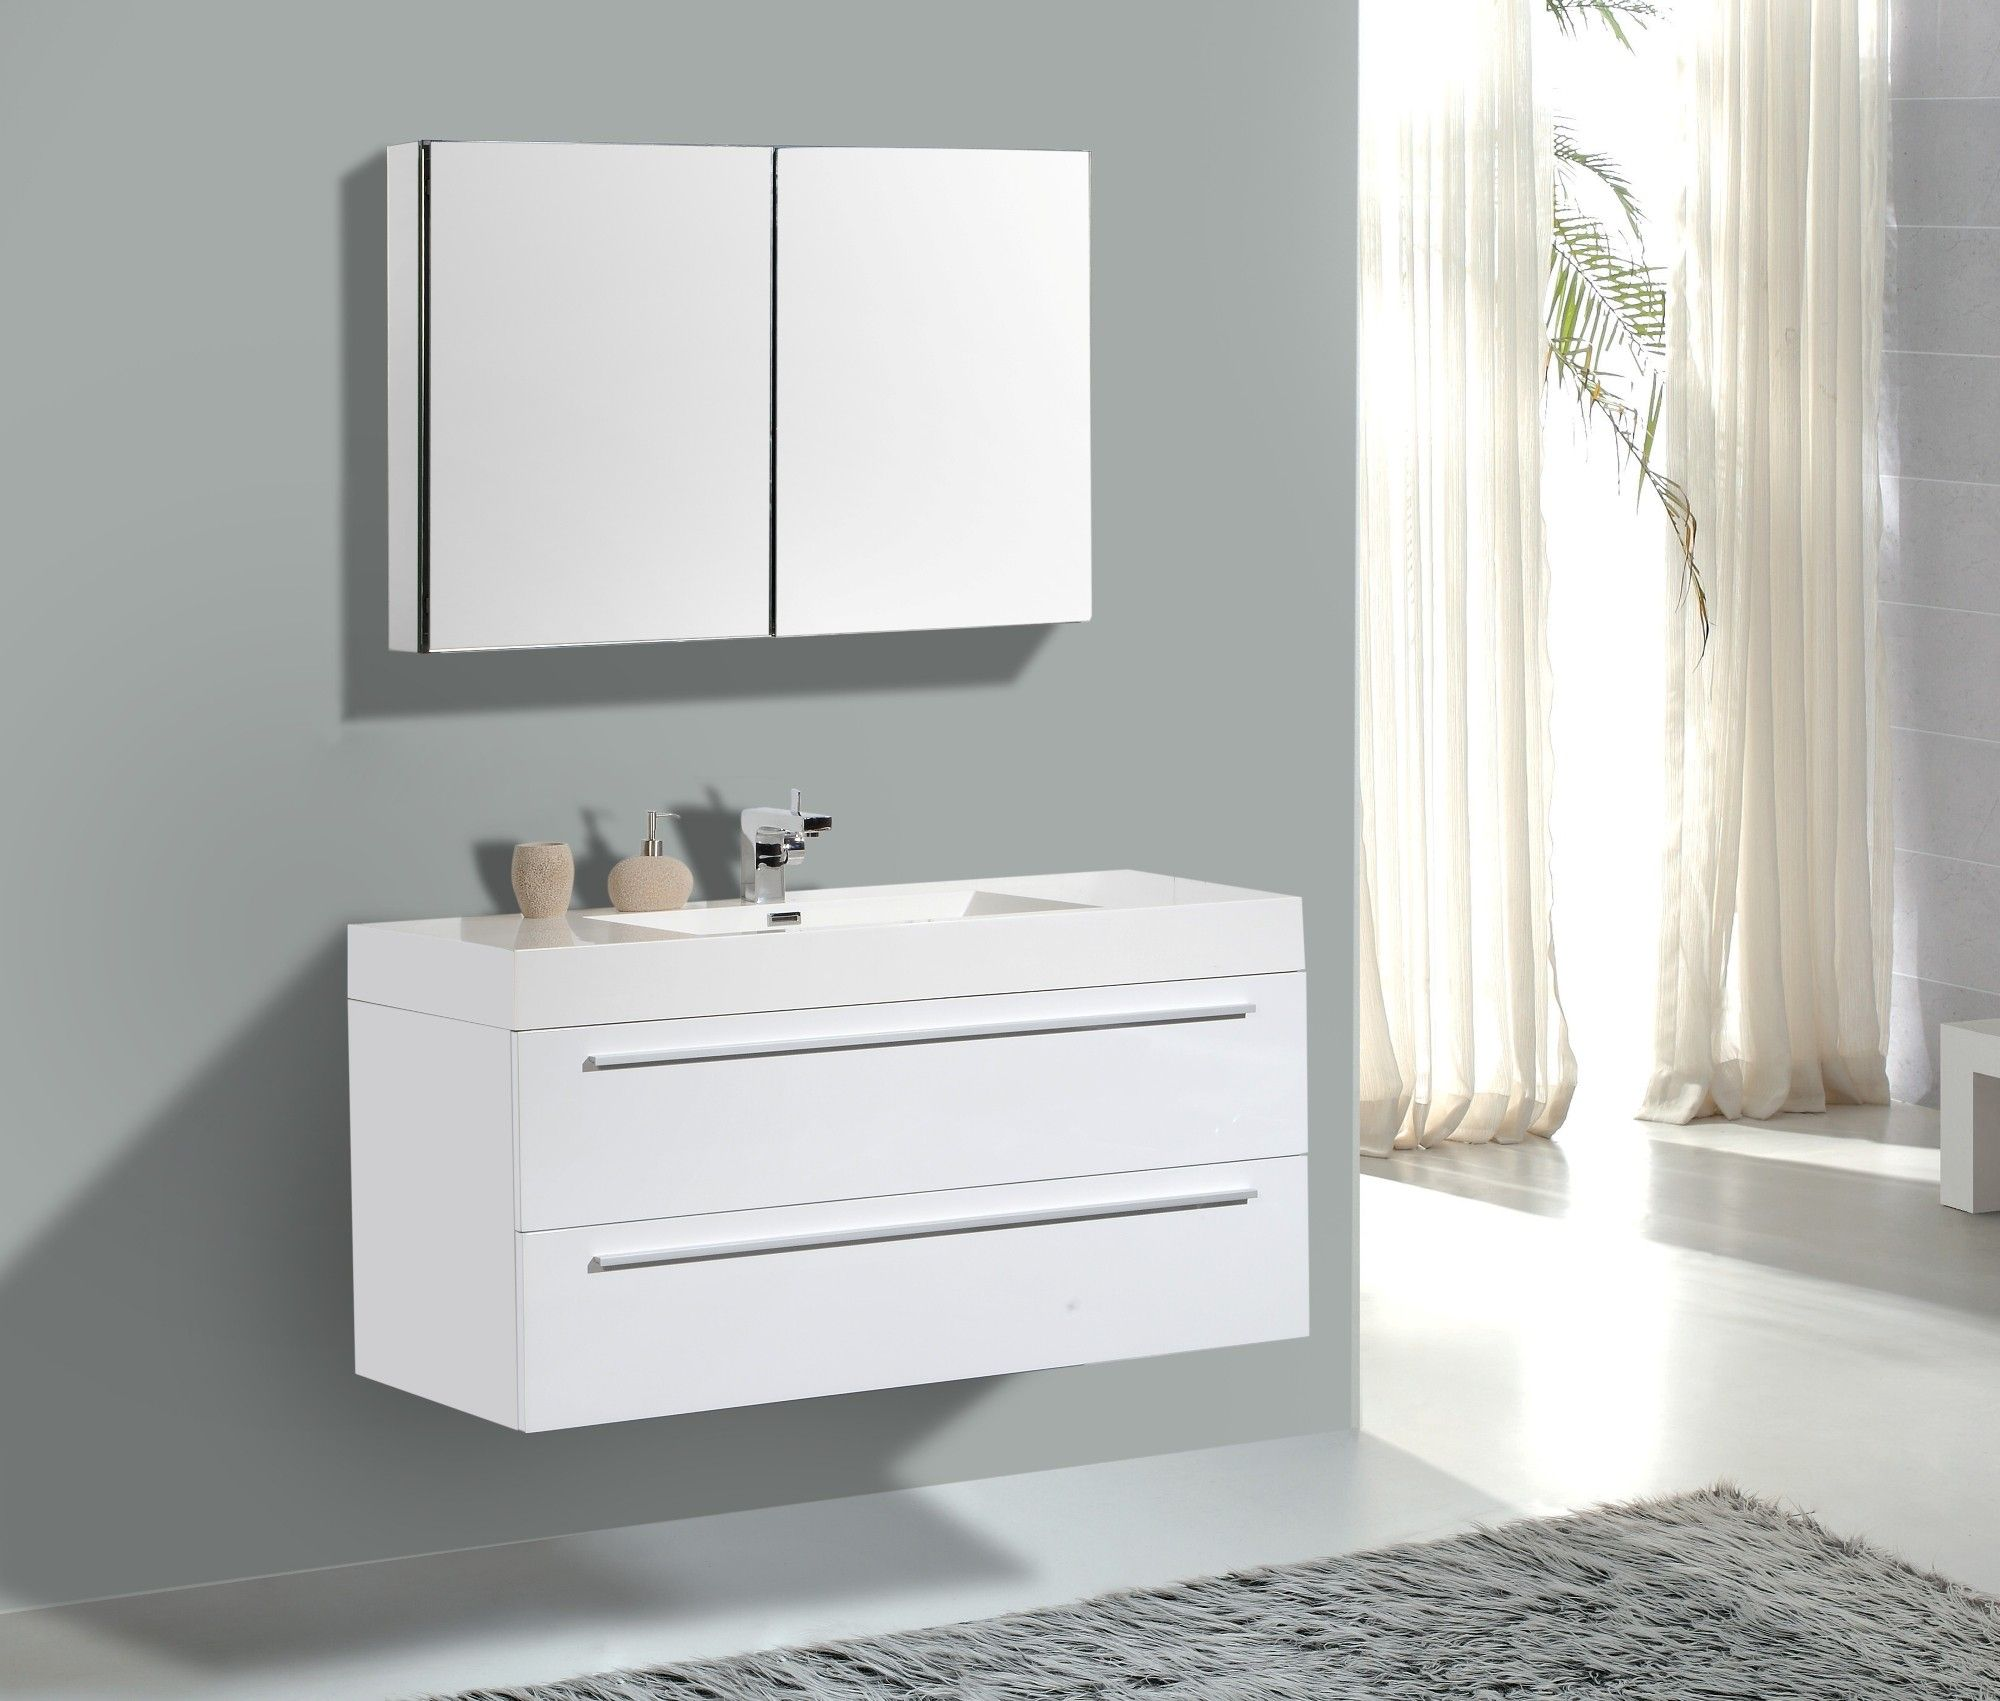 Modern bathroom medicine cabinets - Aqua Decor Maya 47 Modern Bathroom Vanity Set W Medicine Cabinet White